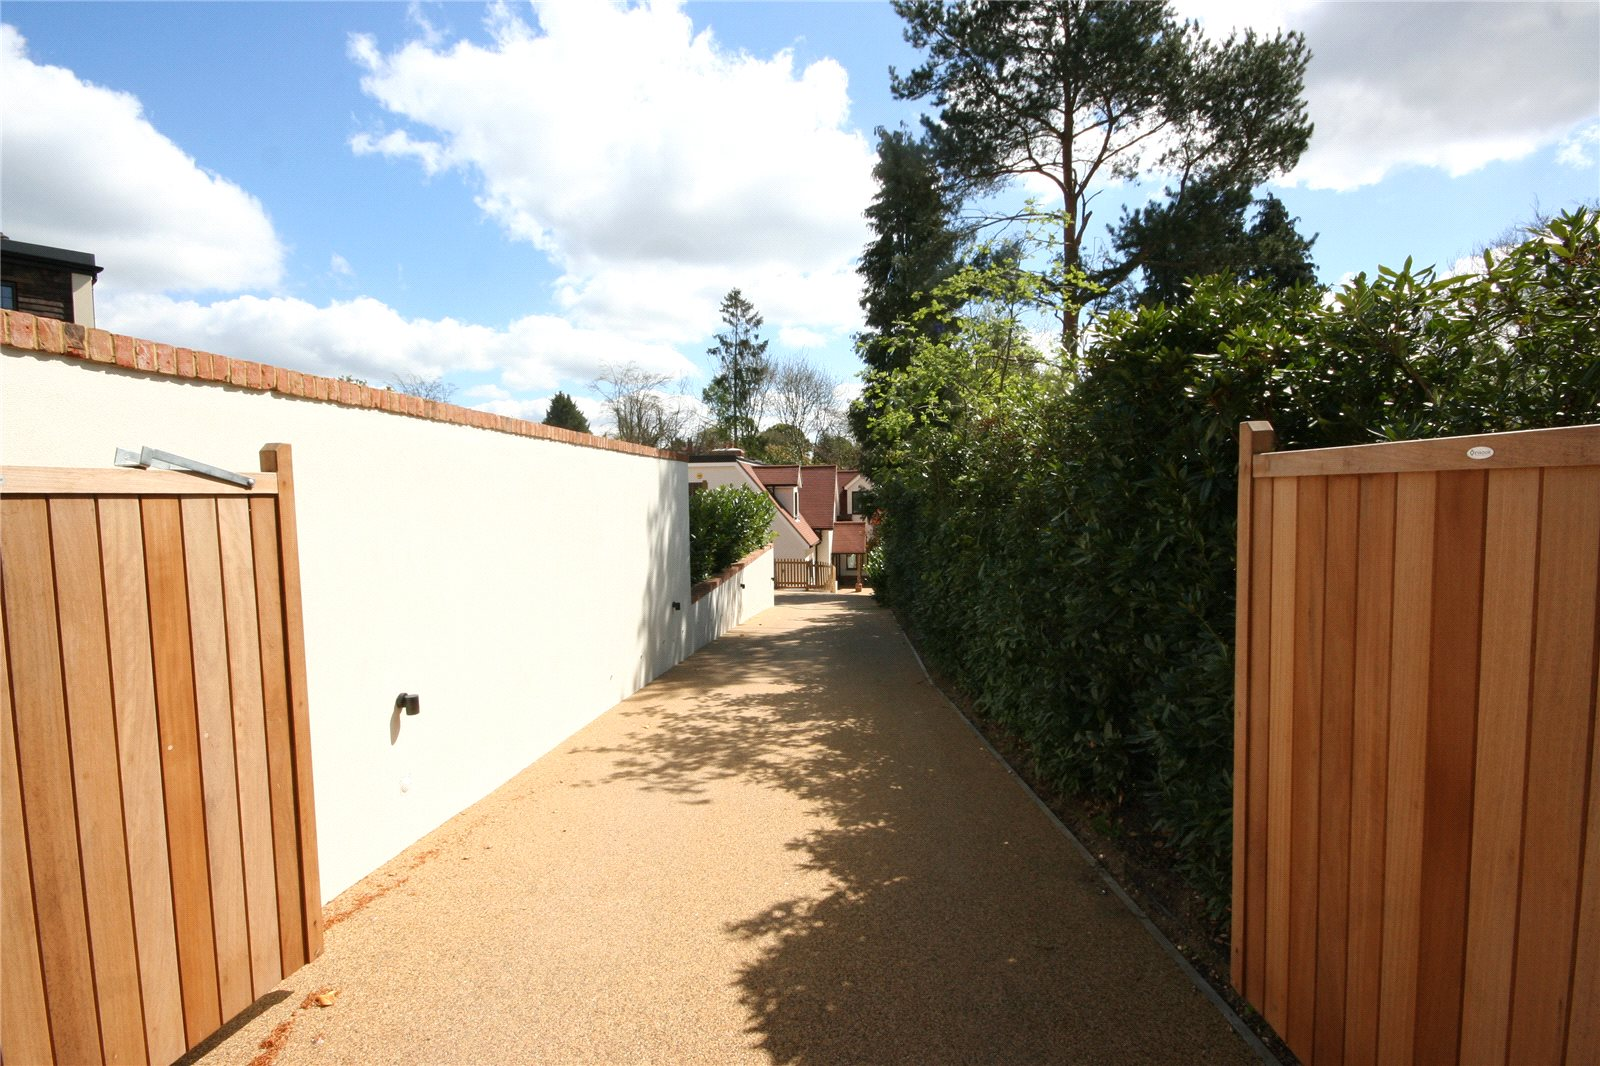 Additional photo for property listing at Beeches Drive, Farnham Common, Buckinghamshire, SL2 Farnham Common, Angleterre